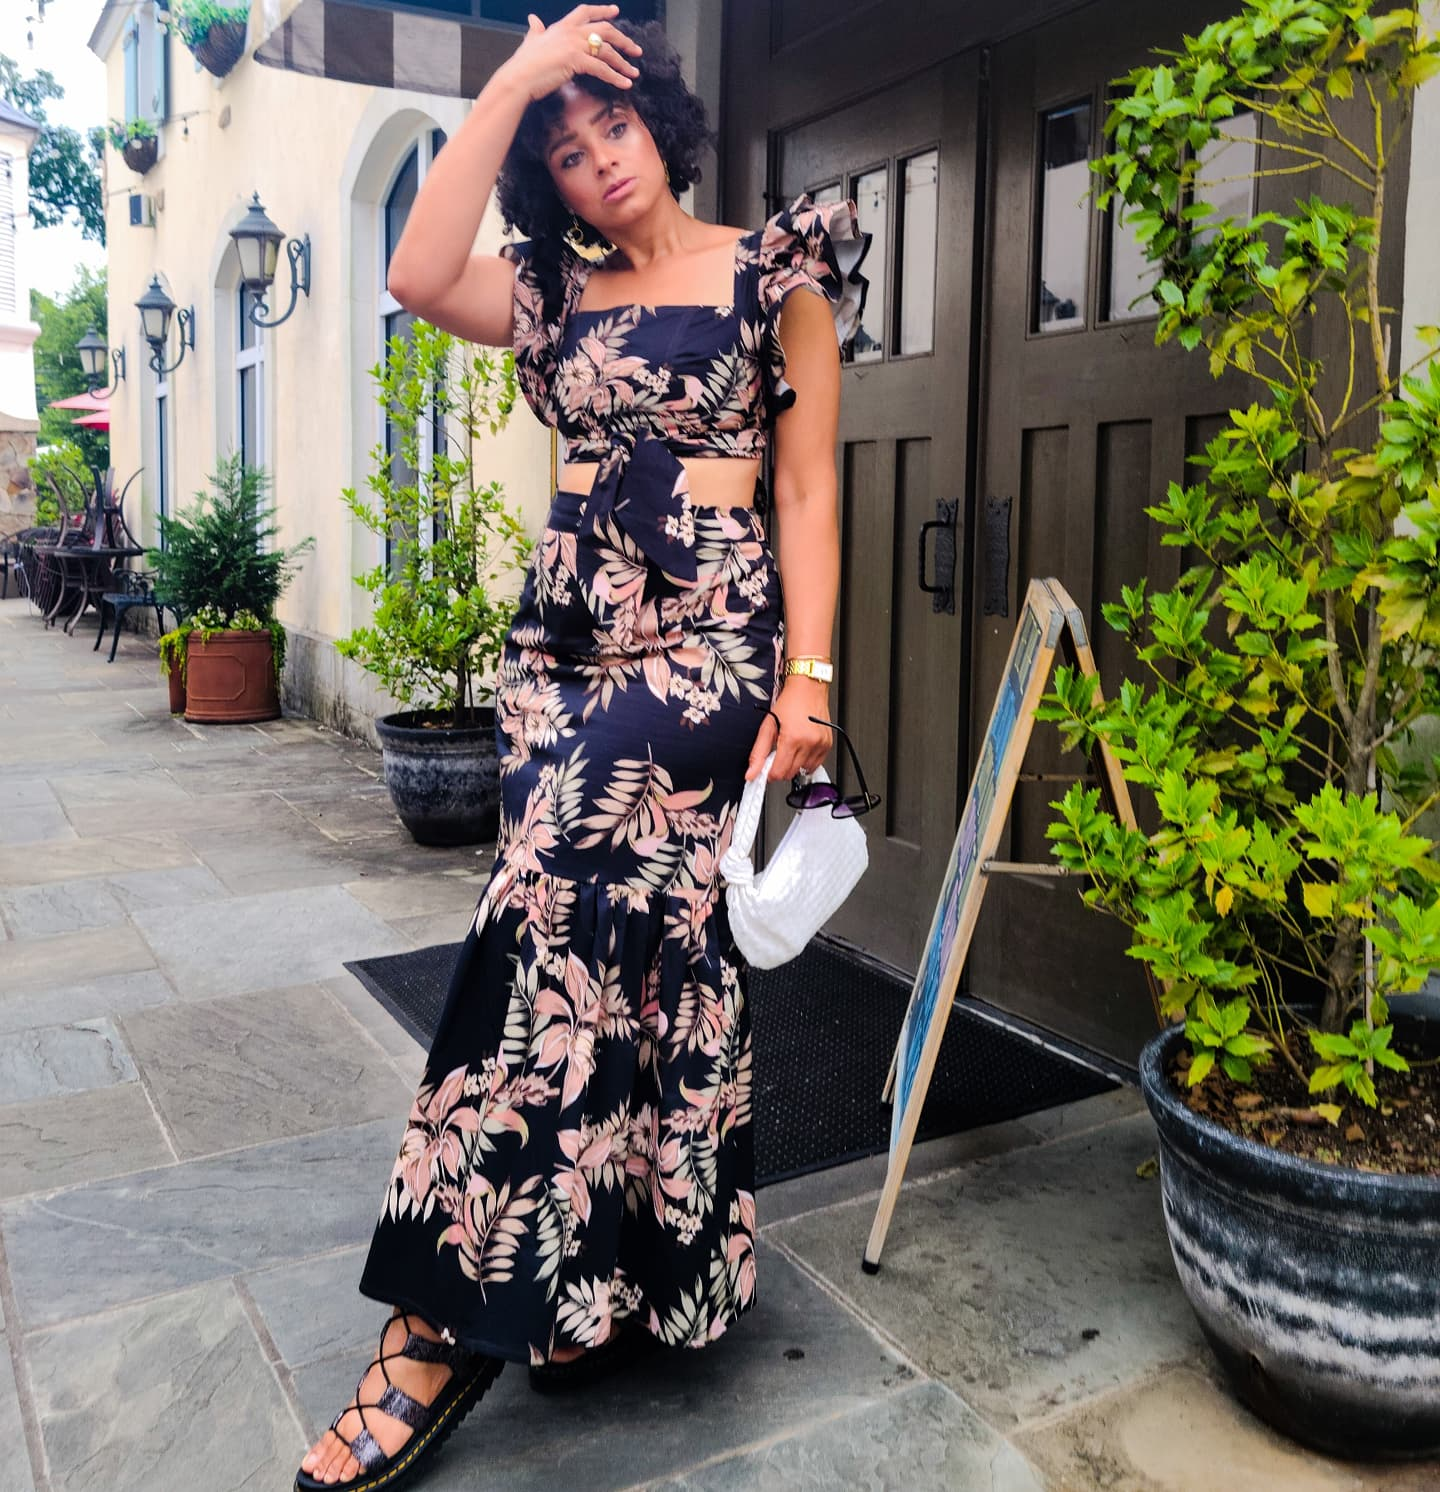 Marcia Spencer in two-piece print outfit with maxi skirt